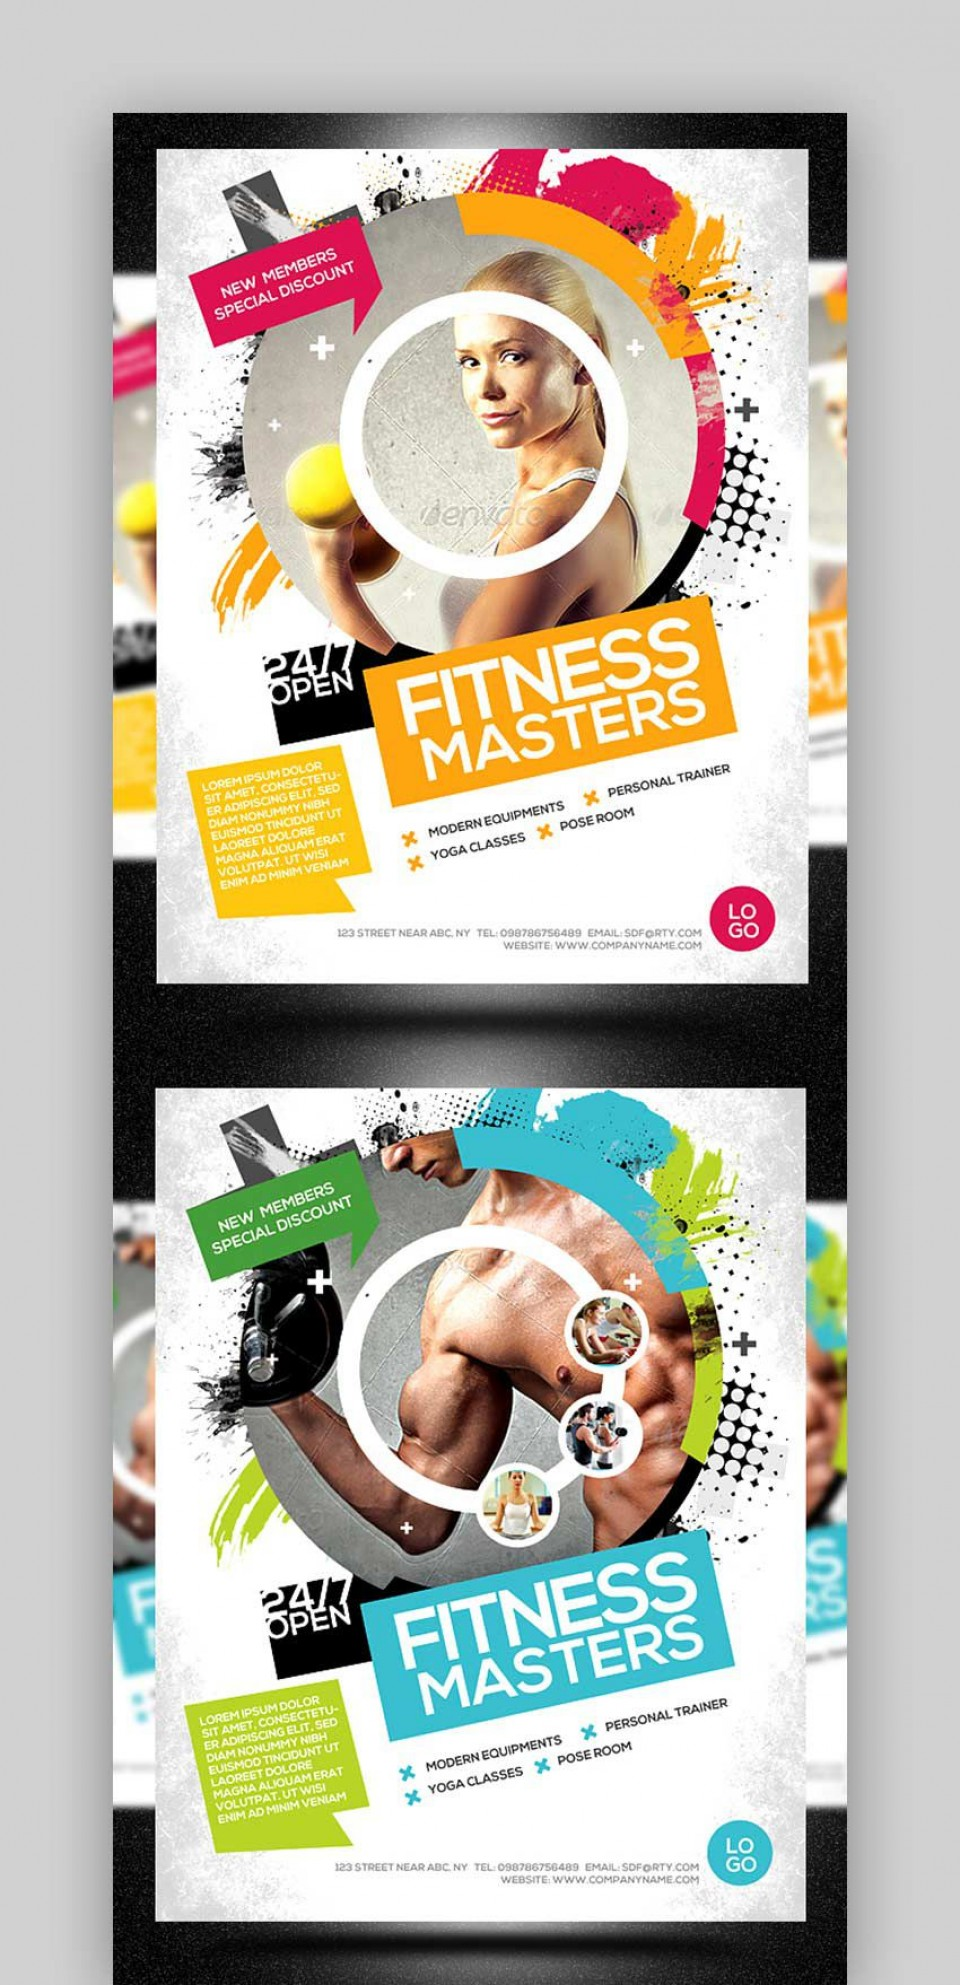 004 Stunning Adobe Photoshop Psd Poster Template Free Download High Resolution 960